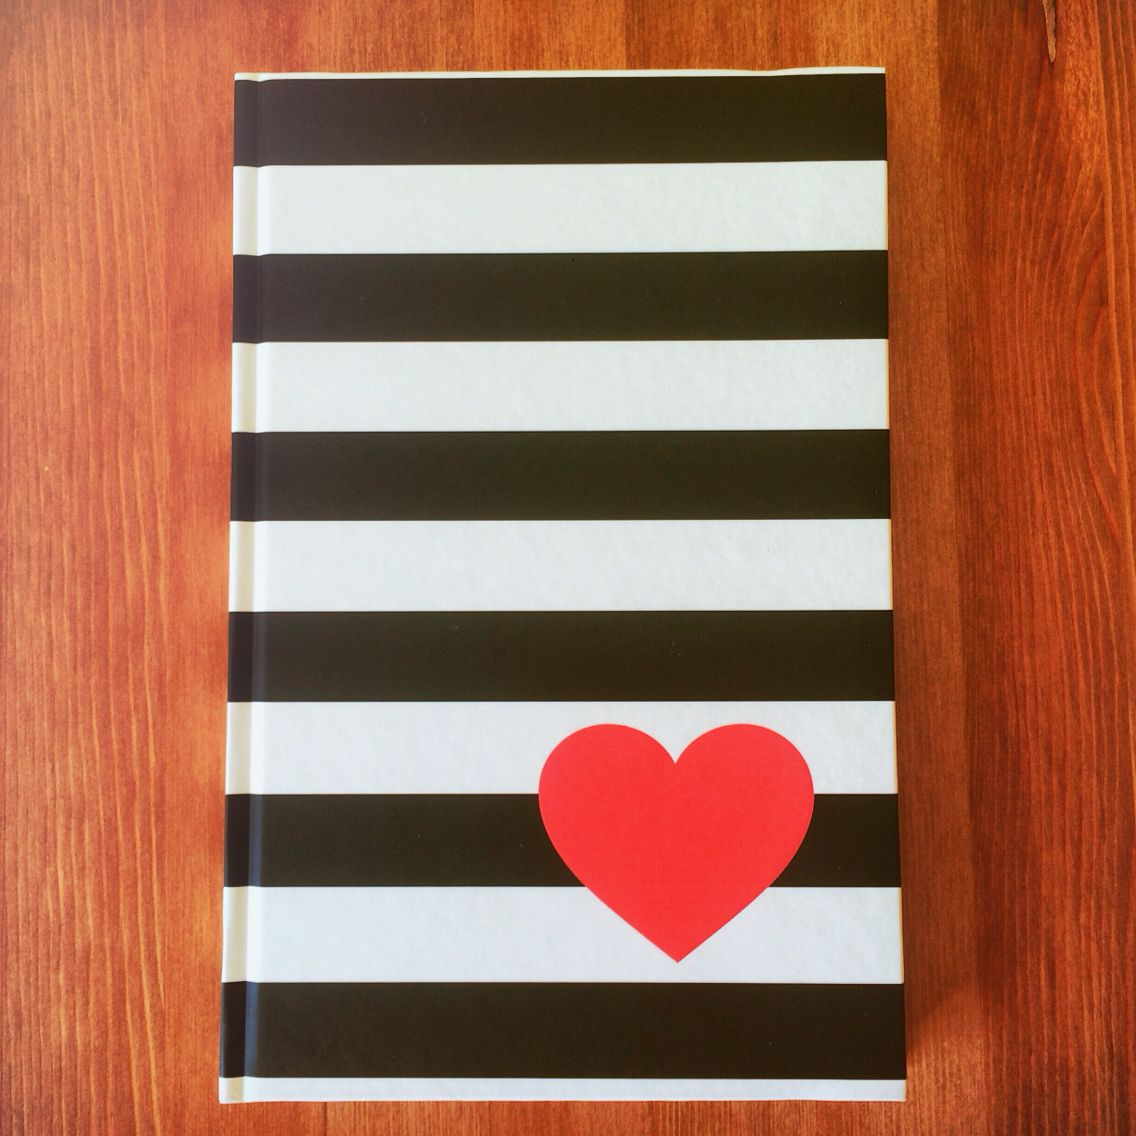 ➕❤️= http://ow.ly/XXQmE #love #inlove #gift #giftideas #unusualgift #present #valentinesday #happyvalentinesday #valentines #notebook #stationery